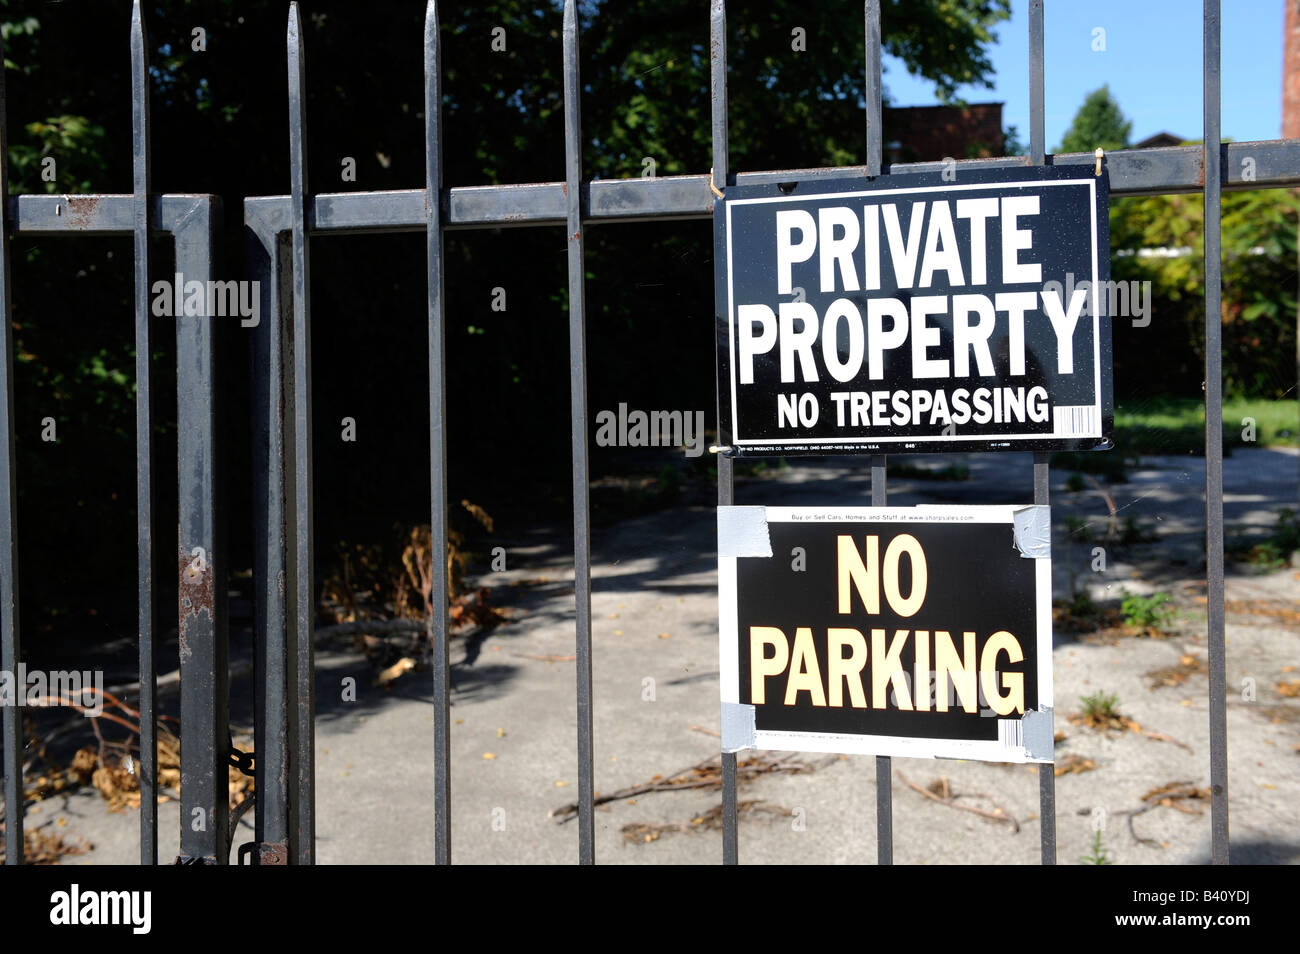 Private property no trespassing parking sign on gate Stock Photo